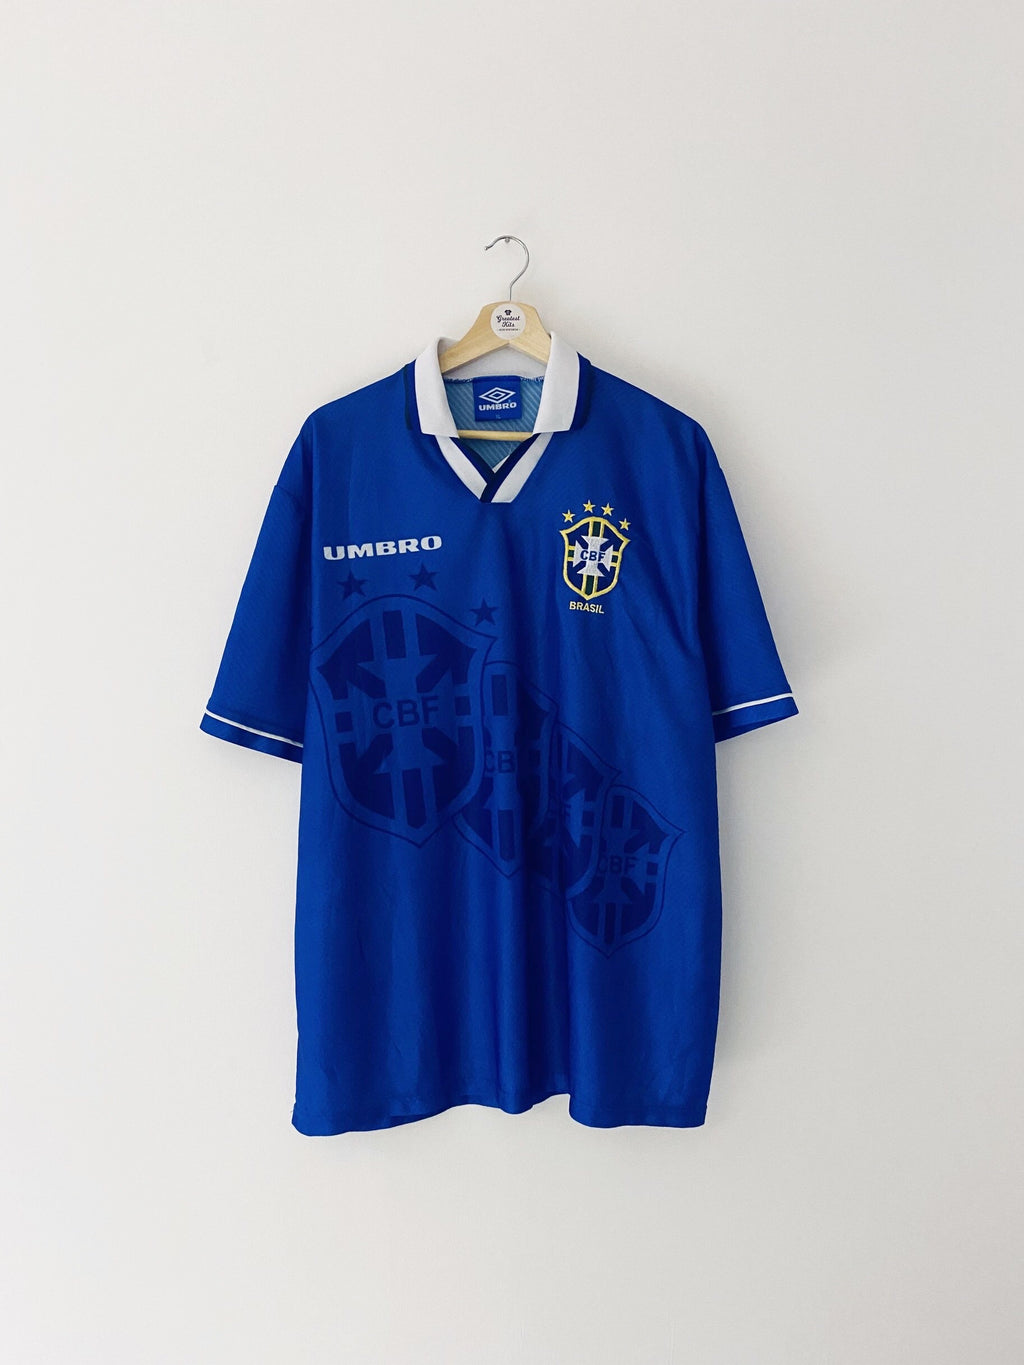 1994/97 Brazil Away Shirt (XL) 9.5/10